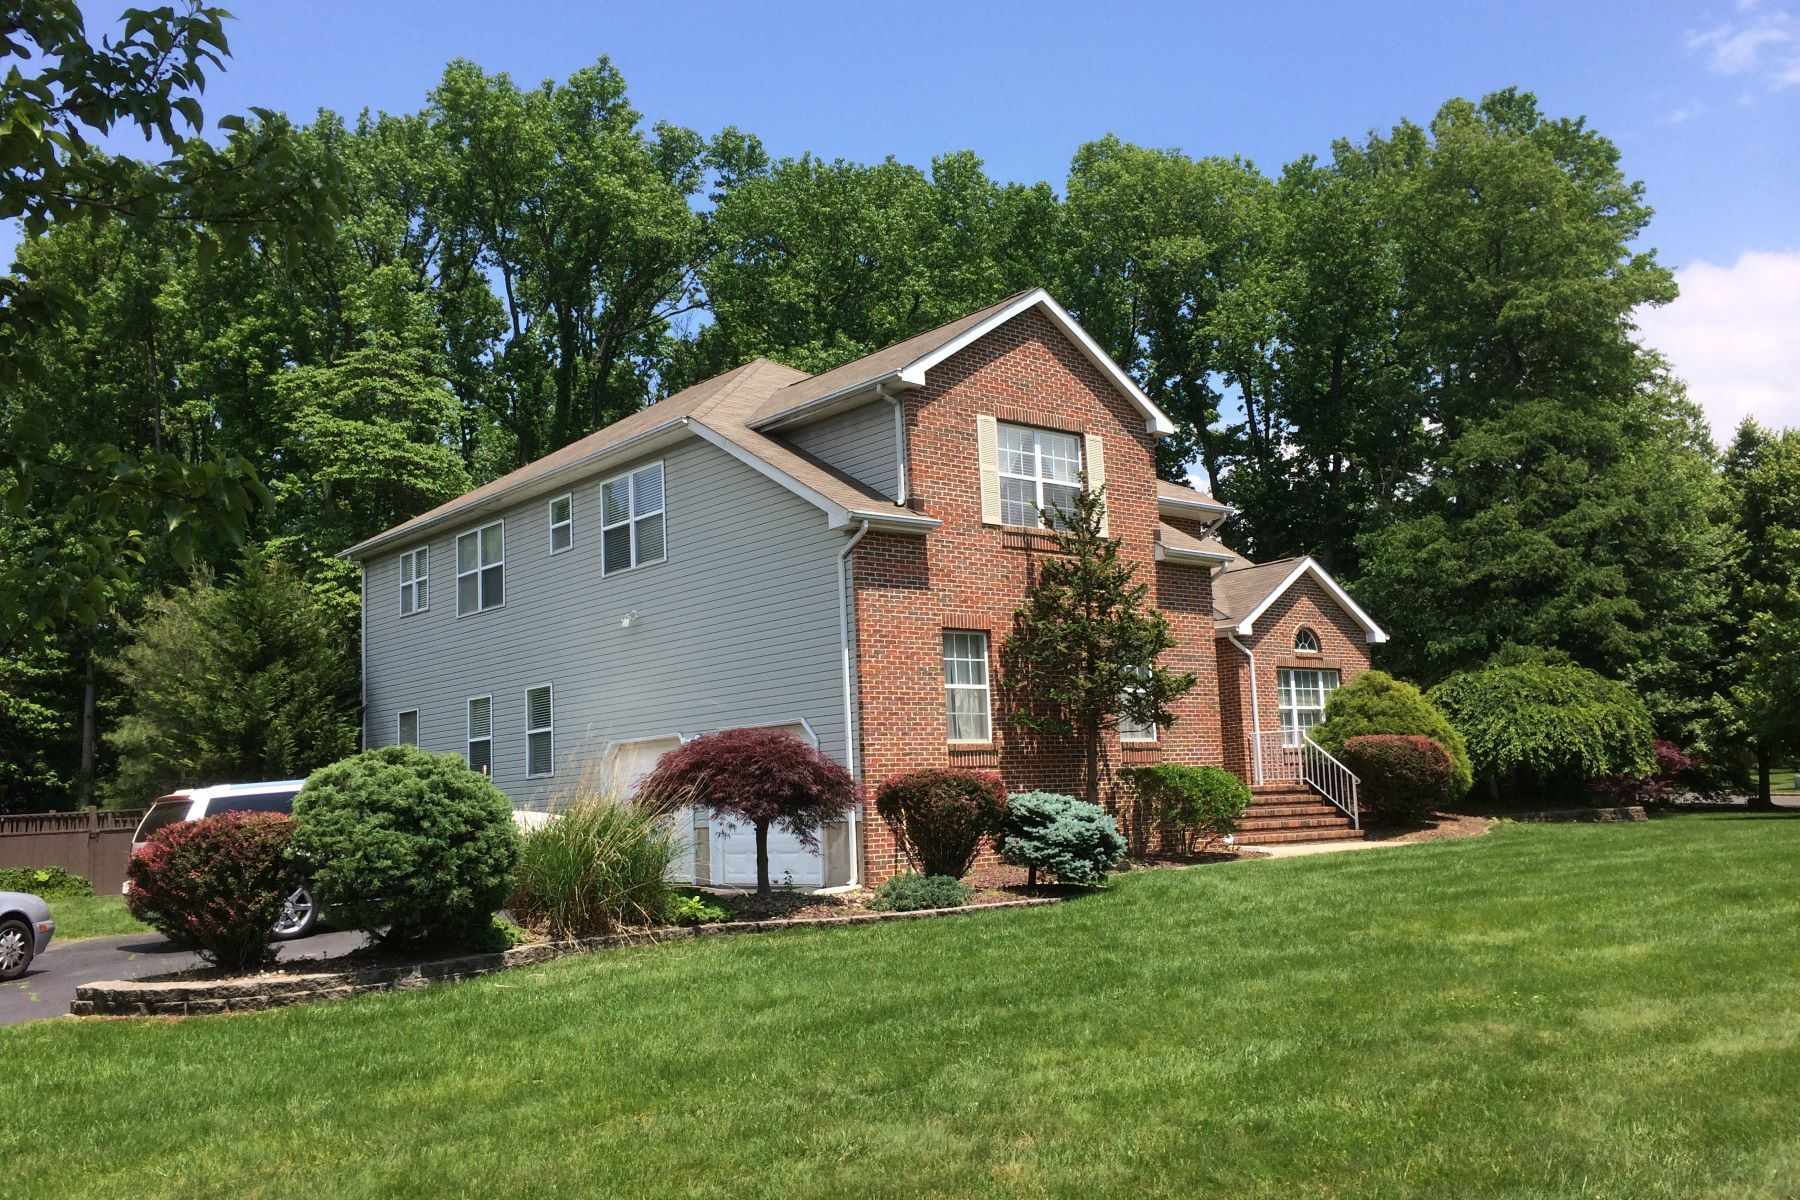 Single Family Homes for Rent at Striking Brick Front Colonial 23 Arnold Lane, Robbinsville, New Jersey 08691 United States